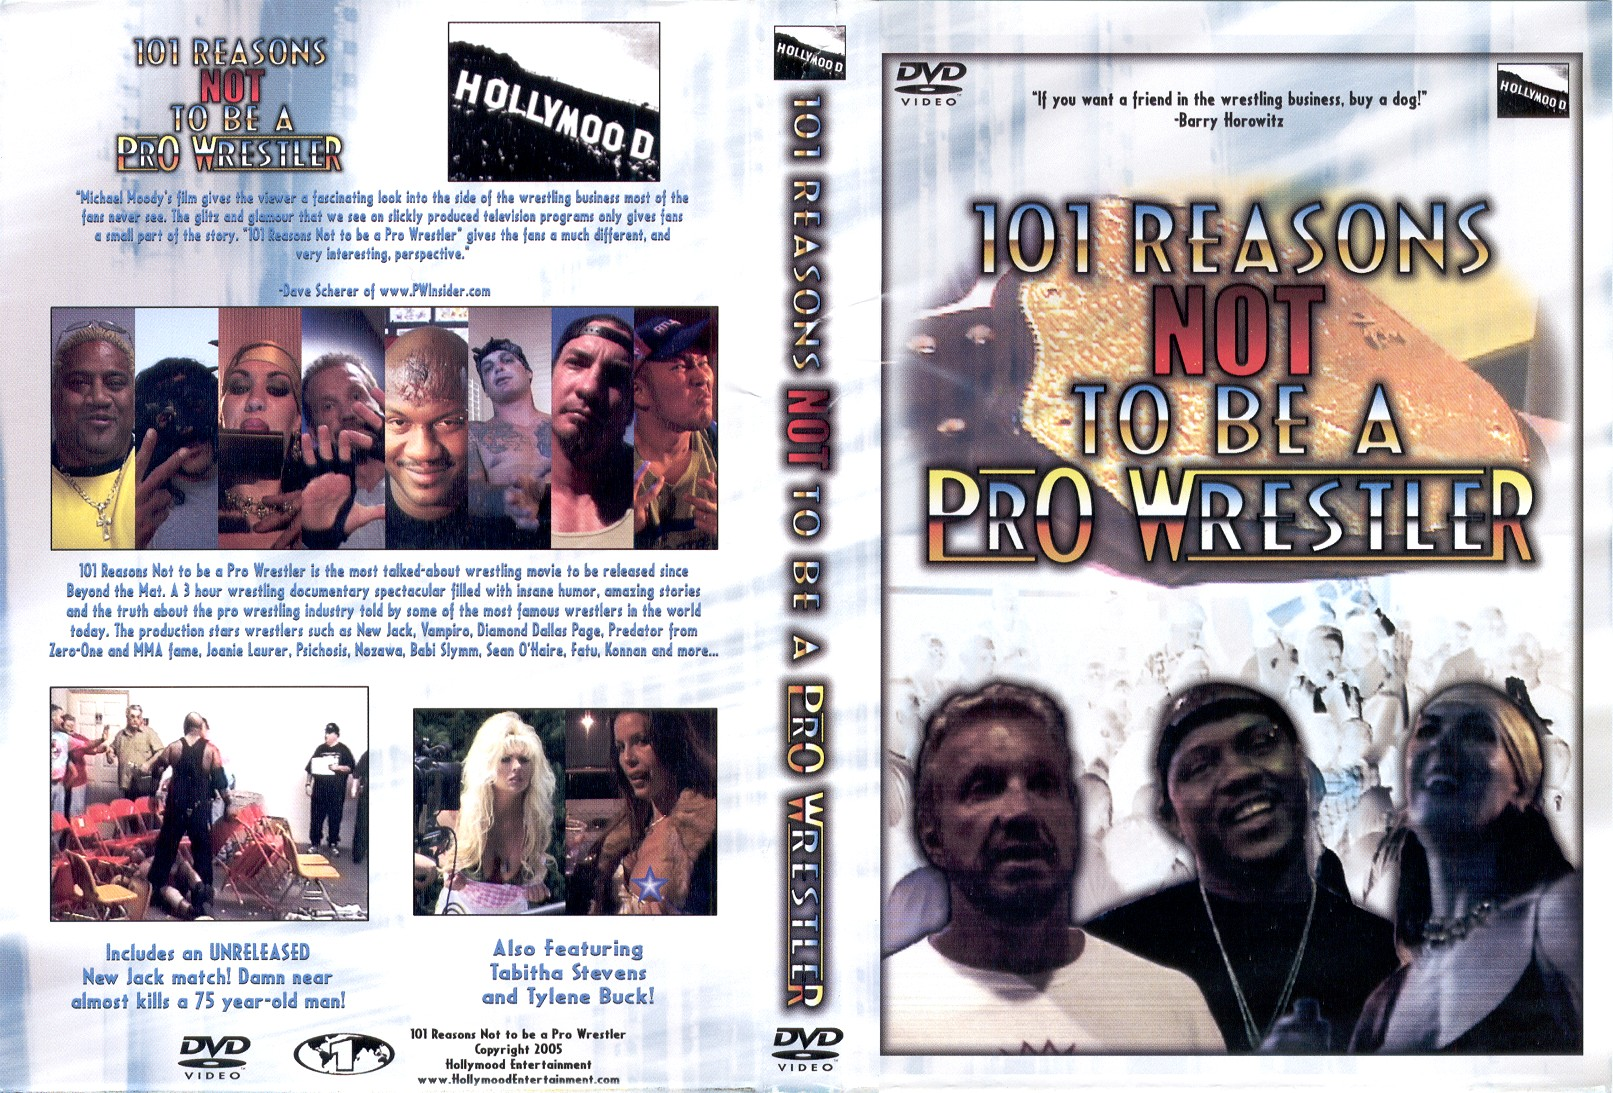 101 reasons not to be a prowrestler